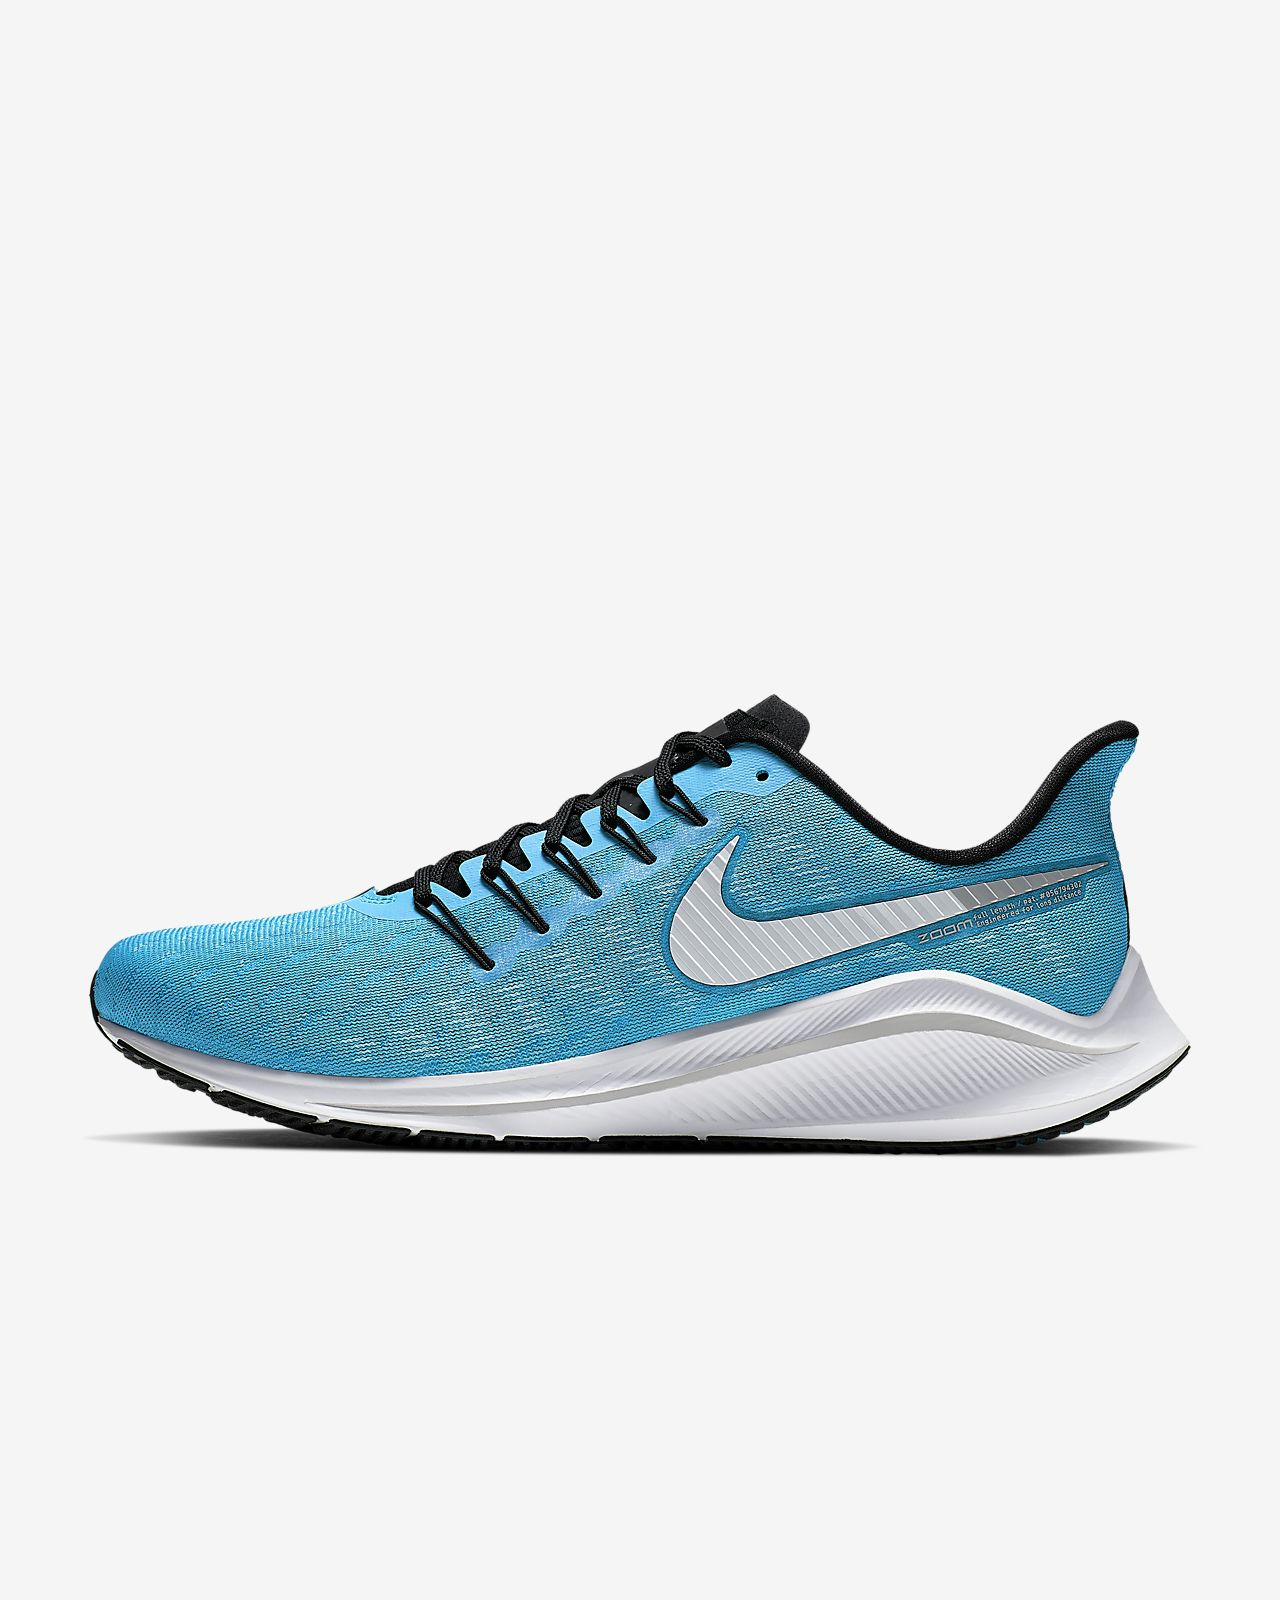 c78399eb Nike Air Zoom Vomero 14 Men's Running Shoe. Nike.com